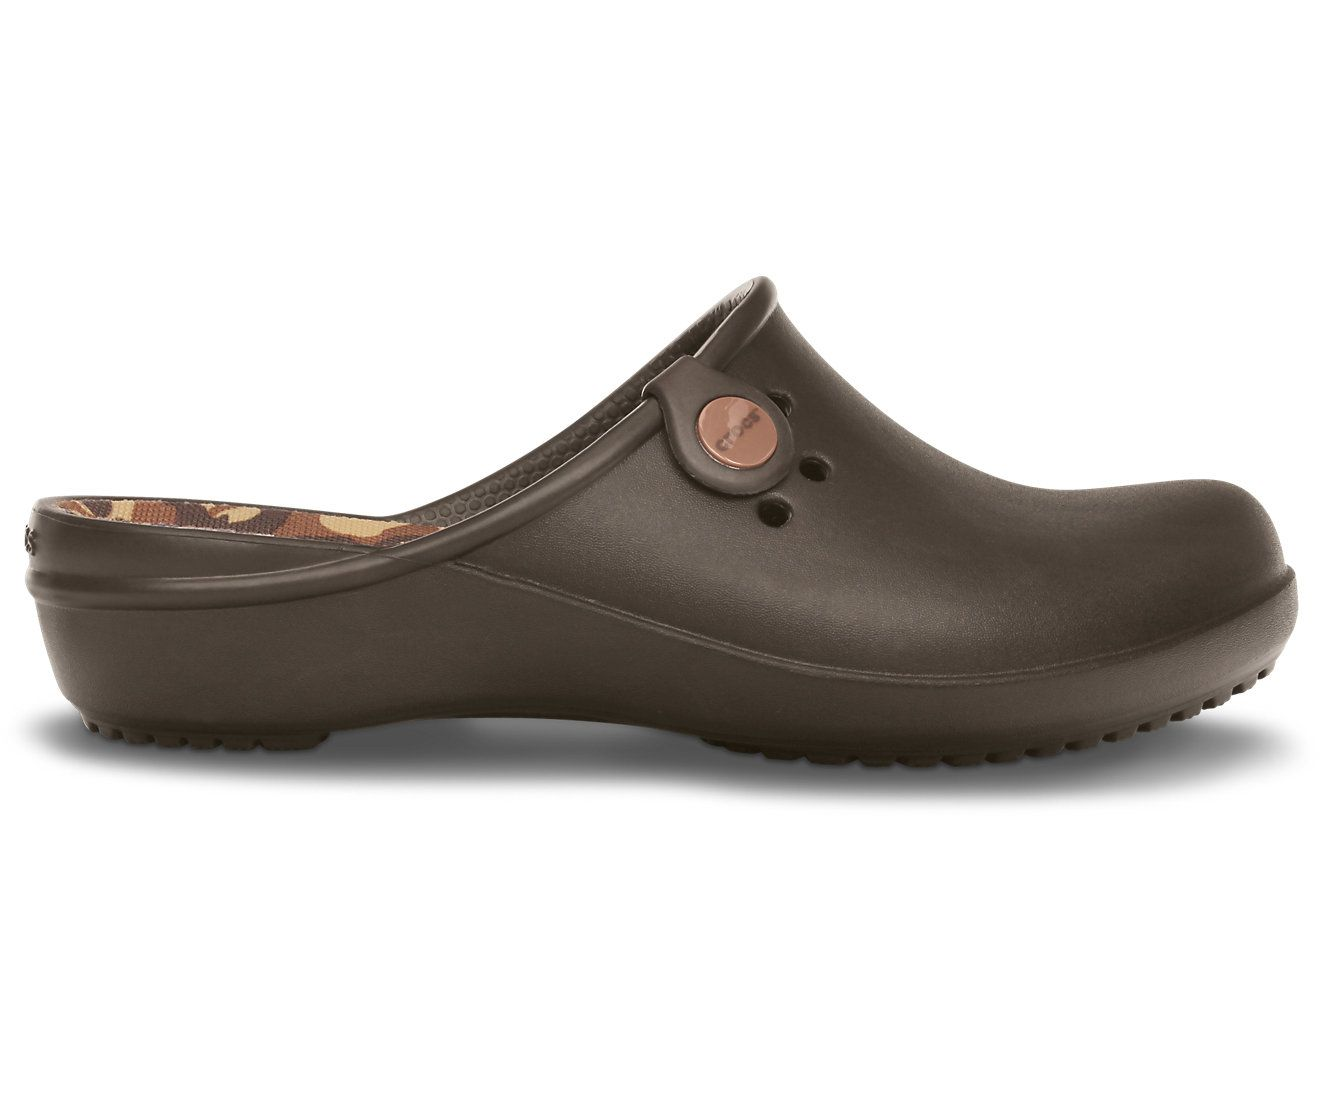 a969a8c948a816 Women s Tully II Clog Brown